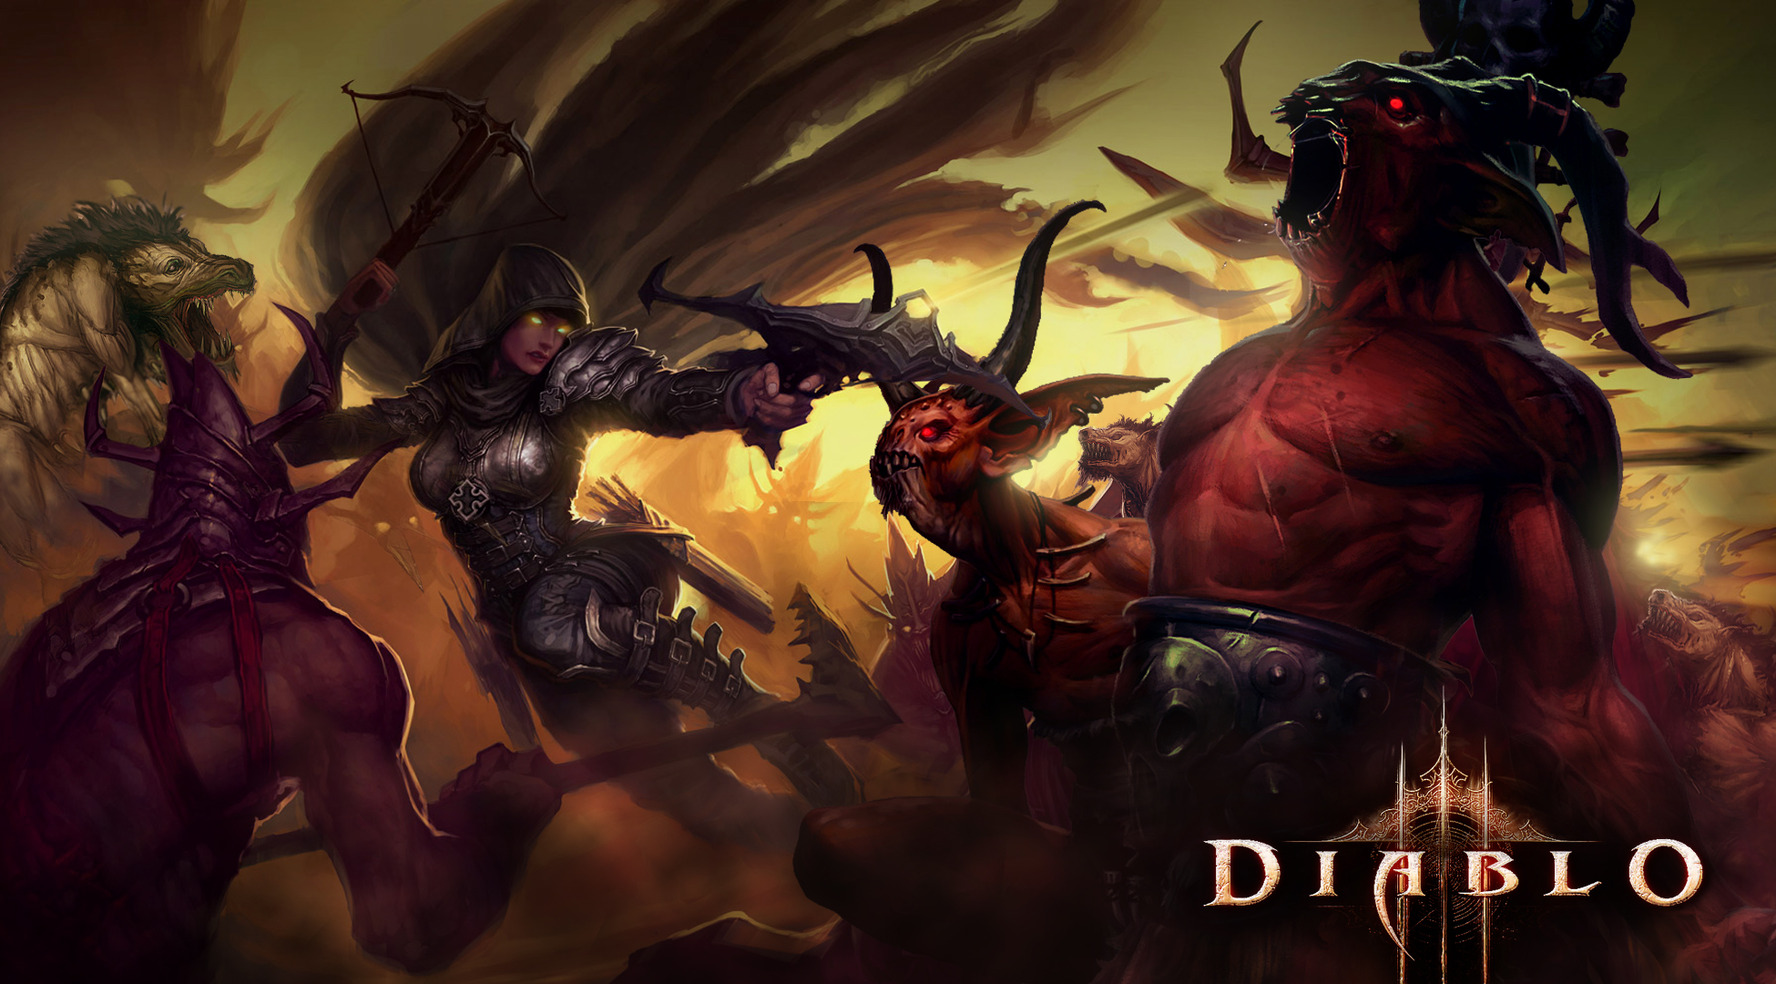 Disponible Diablo III Starter Edition GRATIS en Battlenet [FRI TU PLEi]